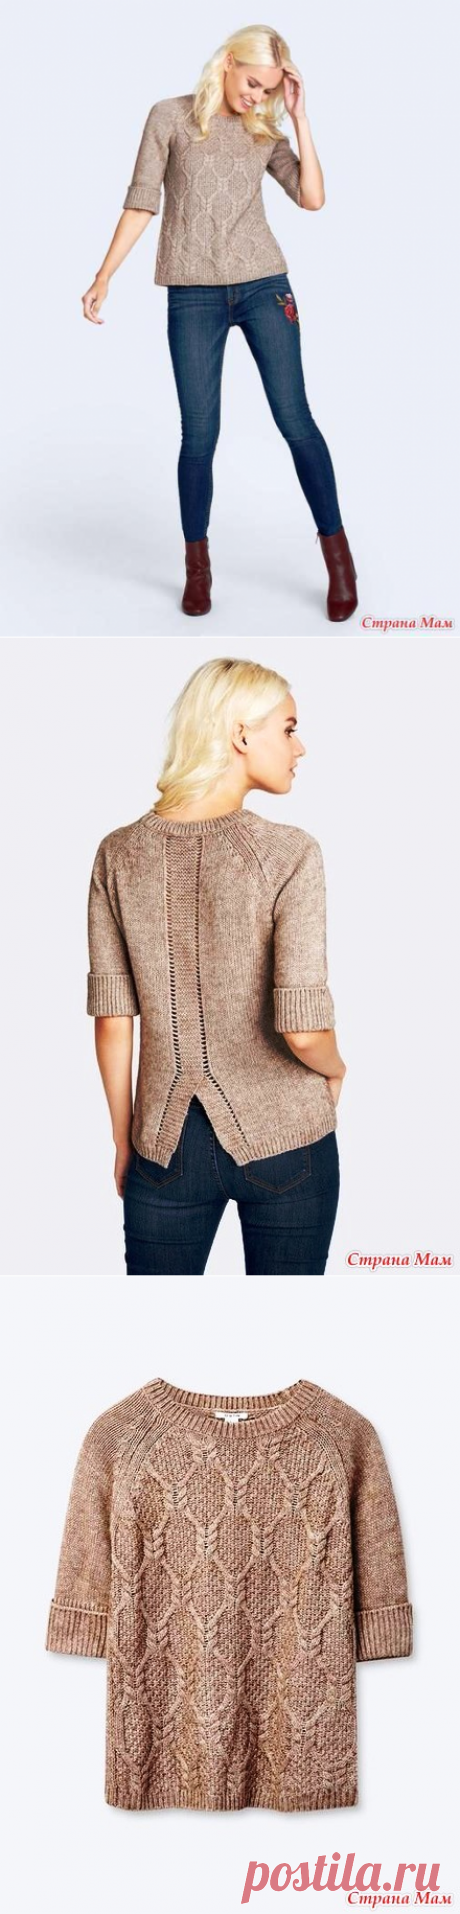 jumper - a raglan from Austen (it is a line in the Country of Mothers)